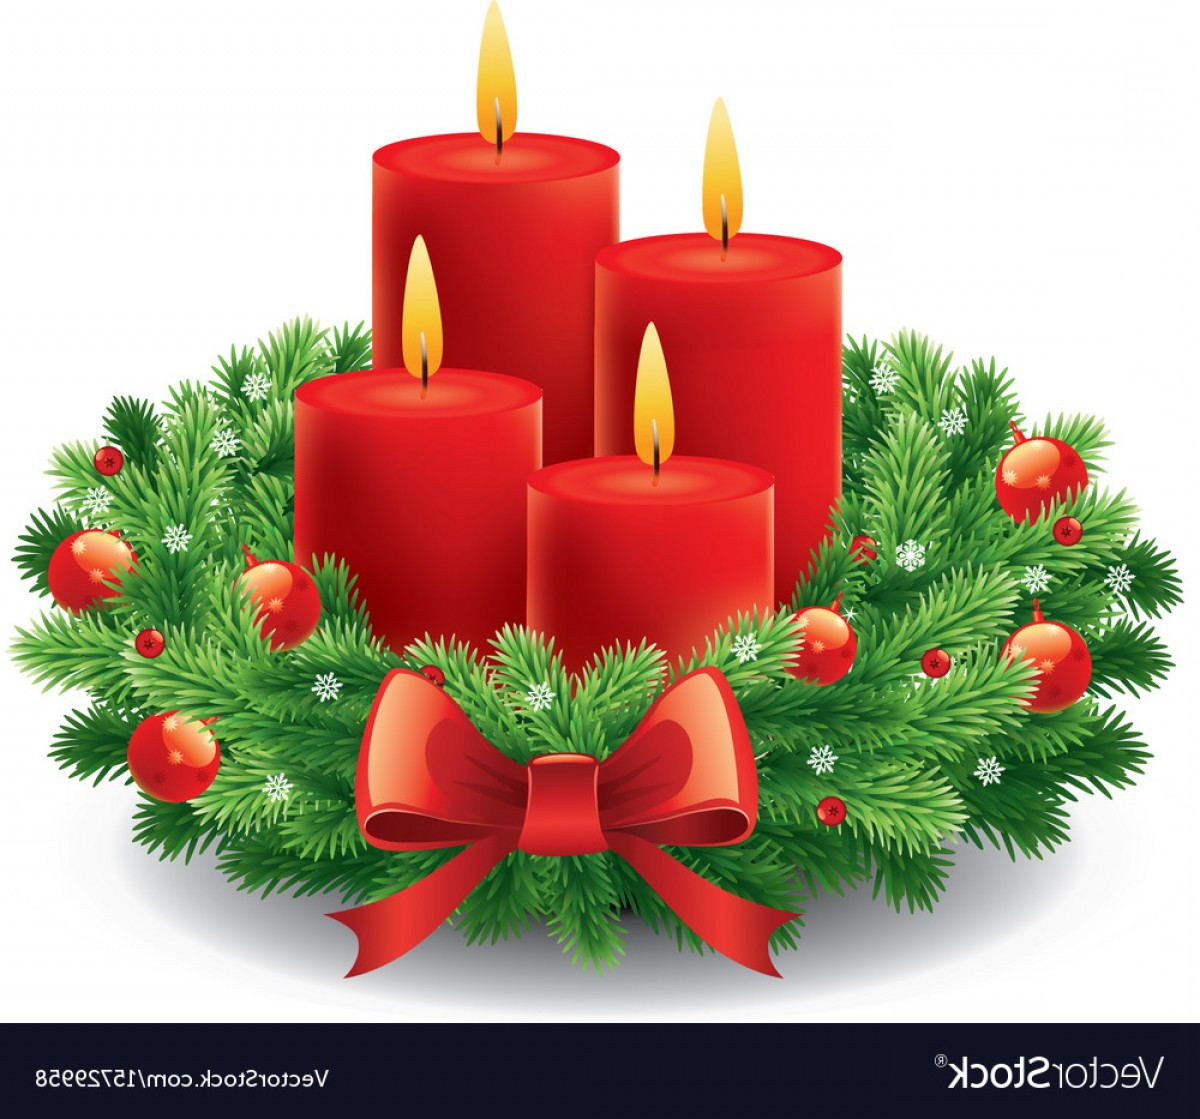 Advent Wreath Vector: Christmas Advent Wreath With Burning Candles Vector